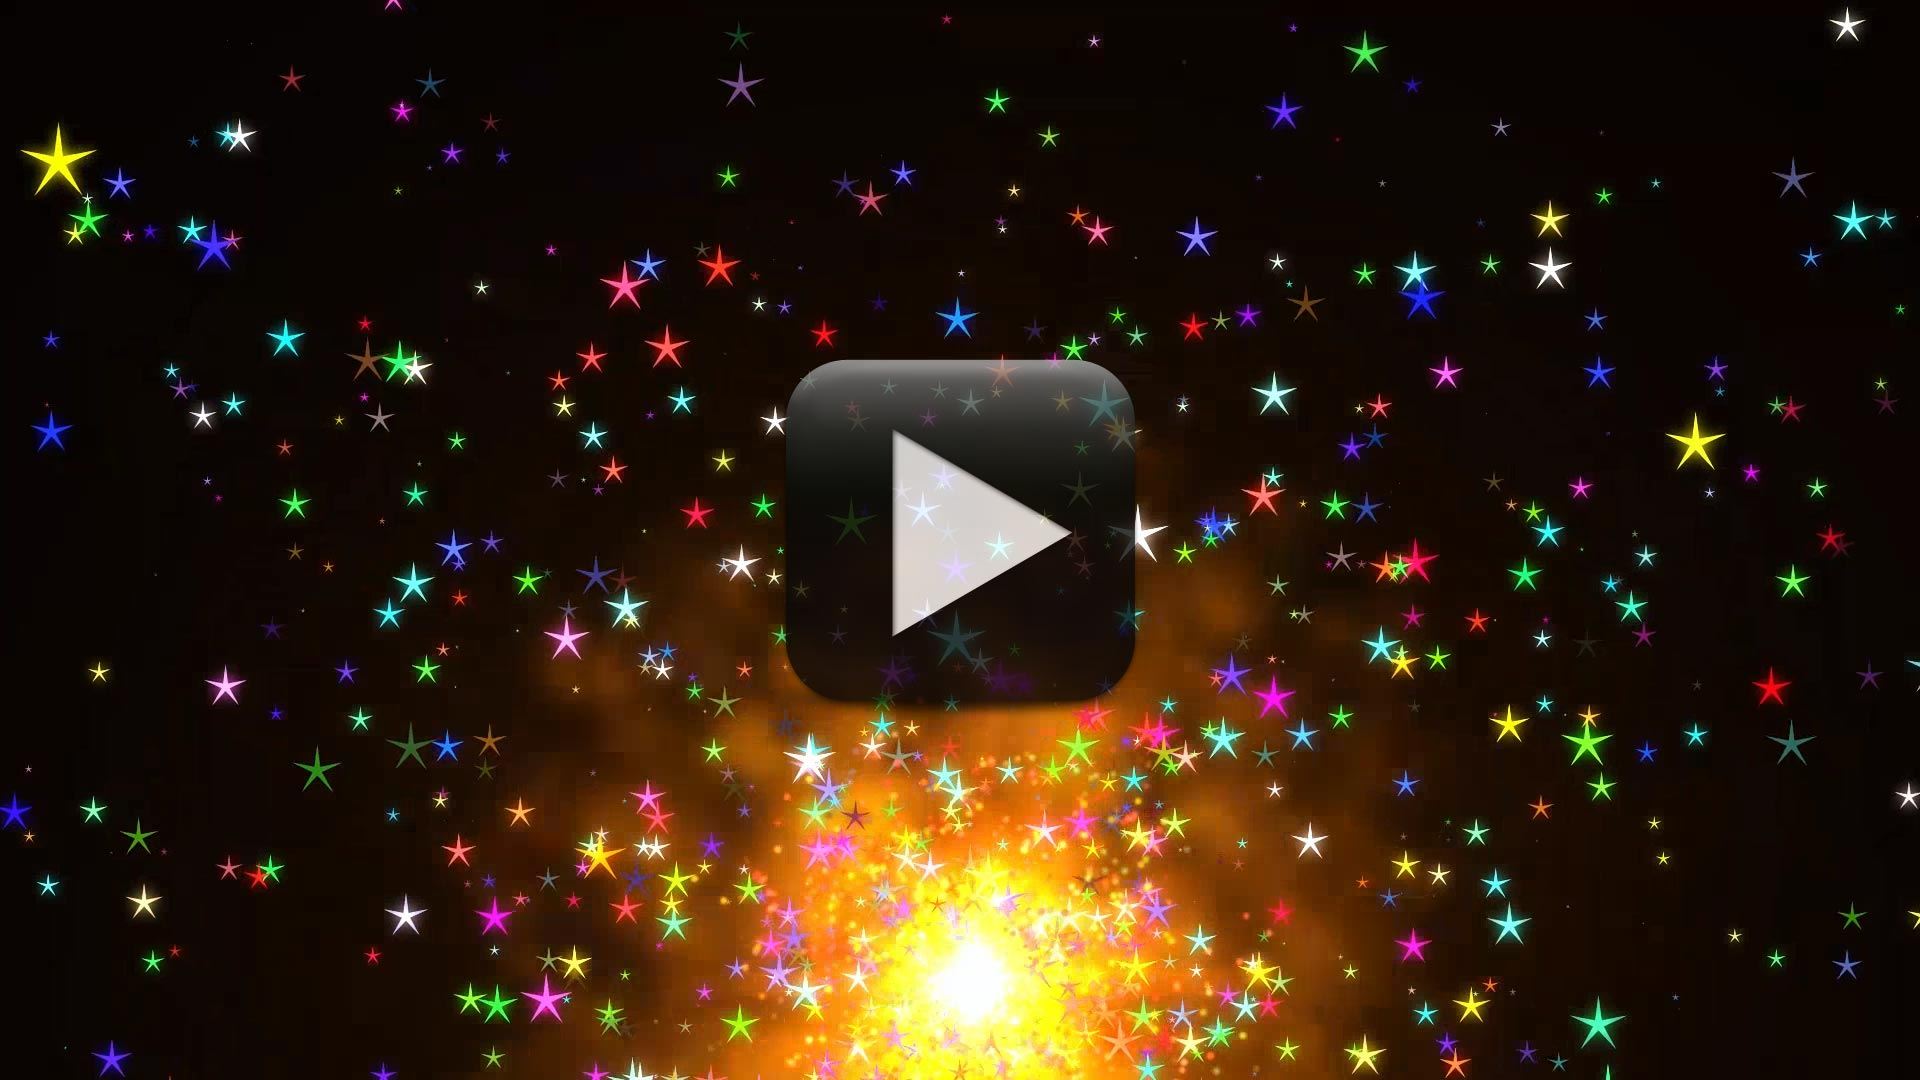 Stars Background Video Effects HD Free Download | All Design Creative